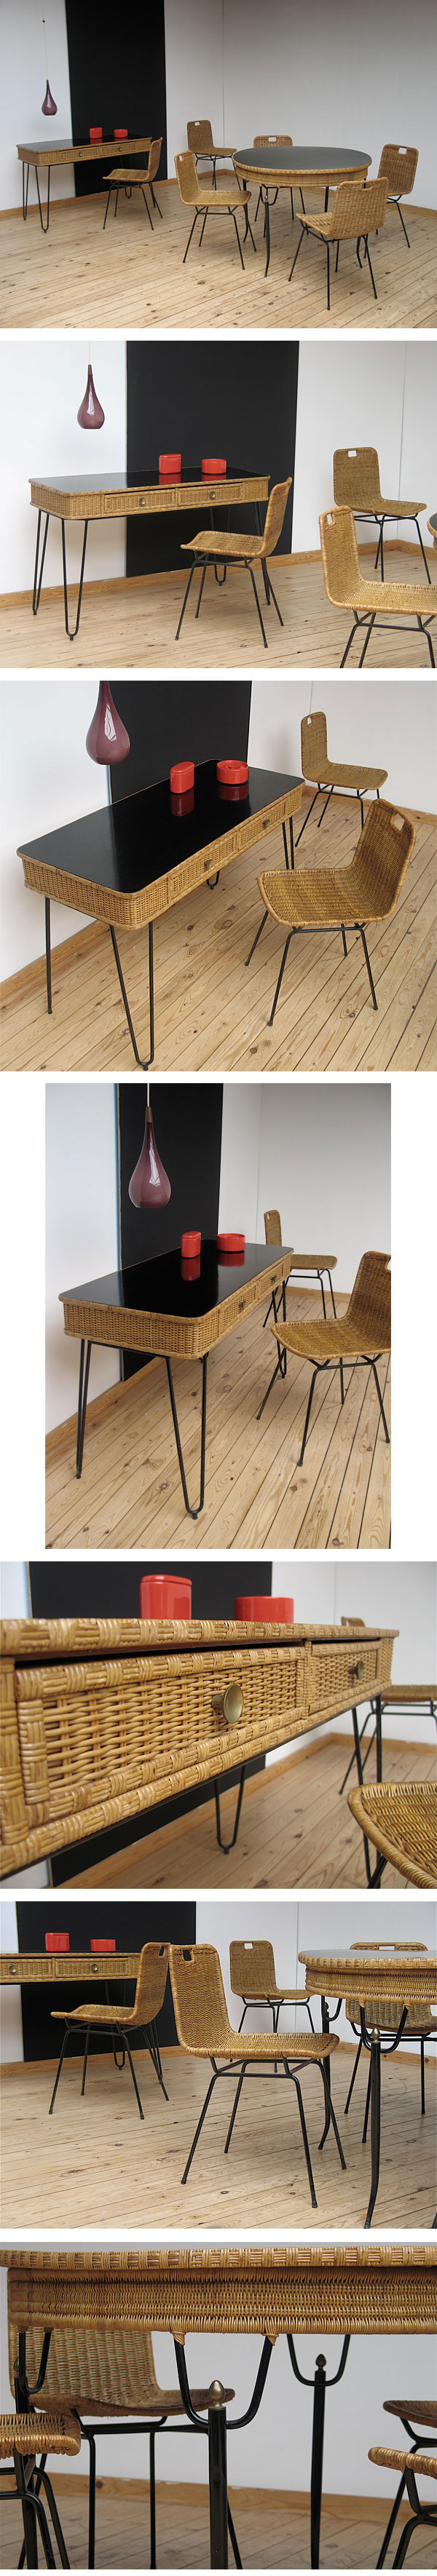 eames, brazil, sao paulo, table, desk, 1950, 1960,